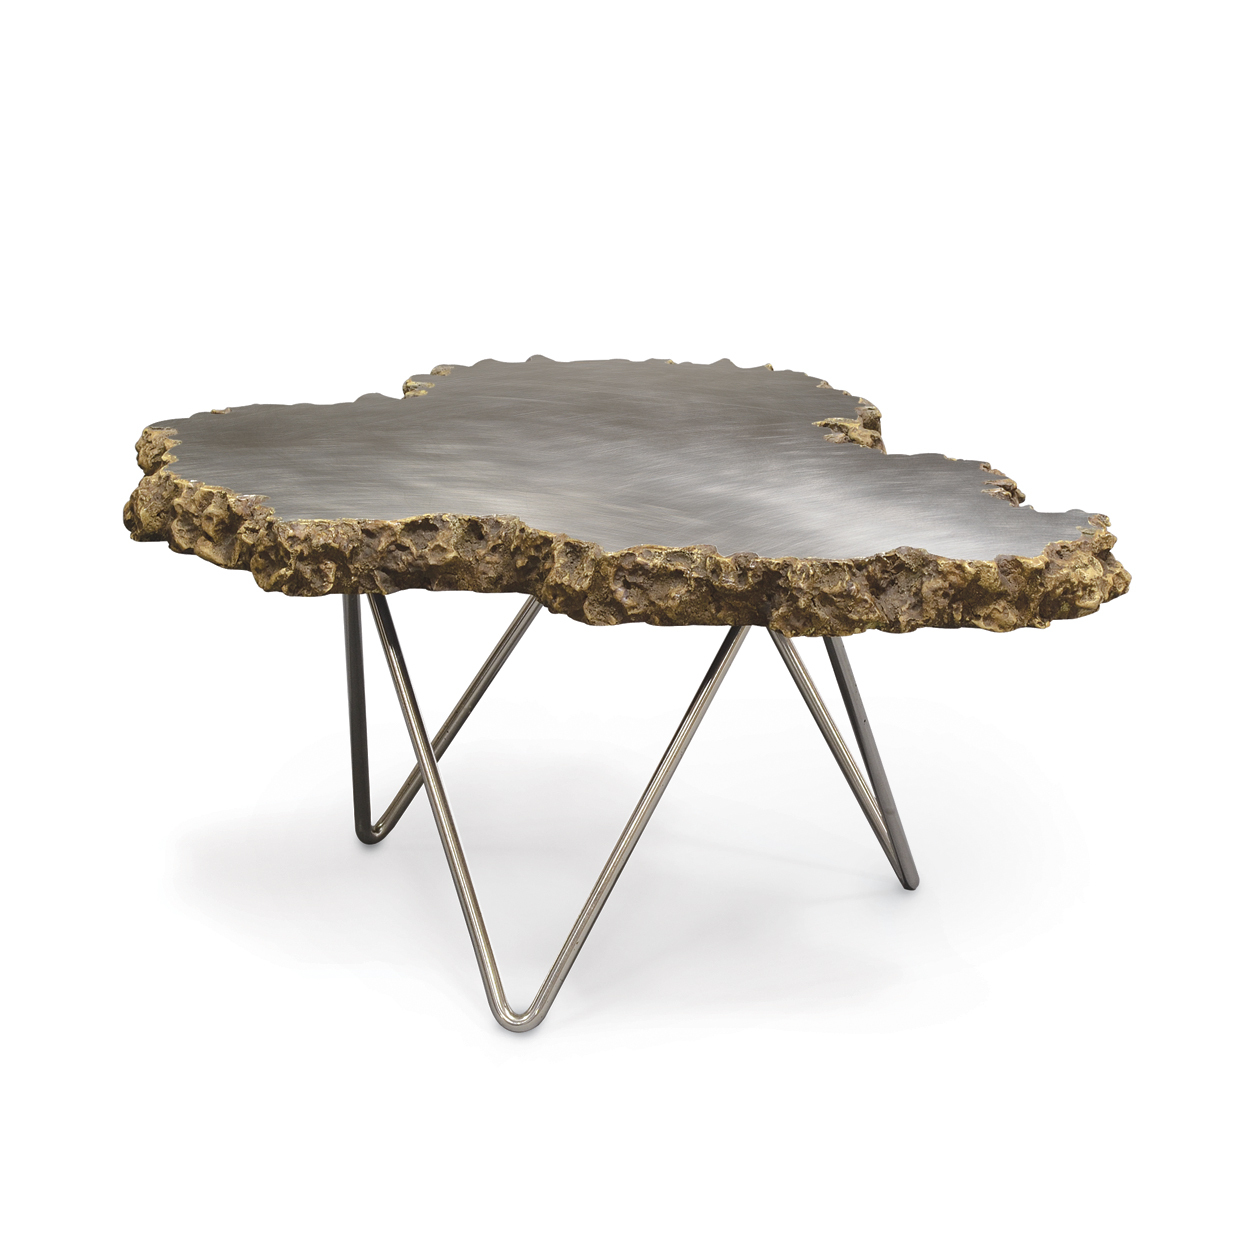 Mecox Stainless Steel & Lava Stone Table $1,125-$1,665